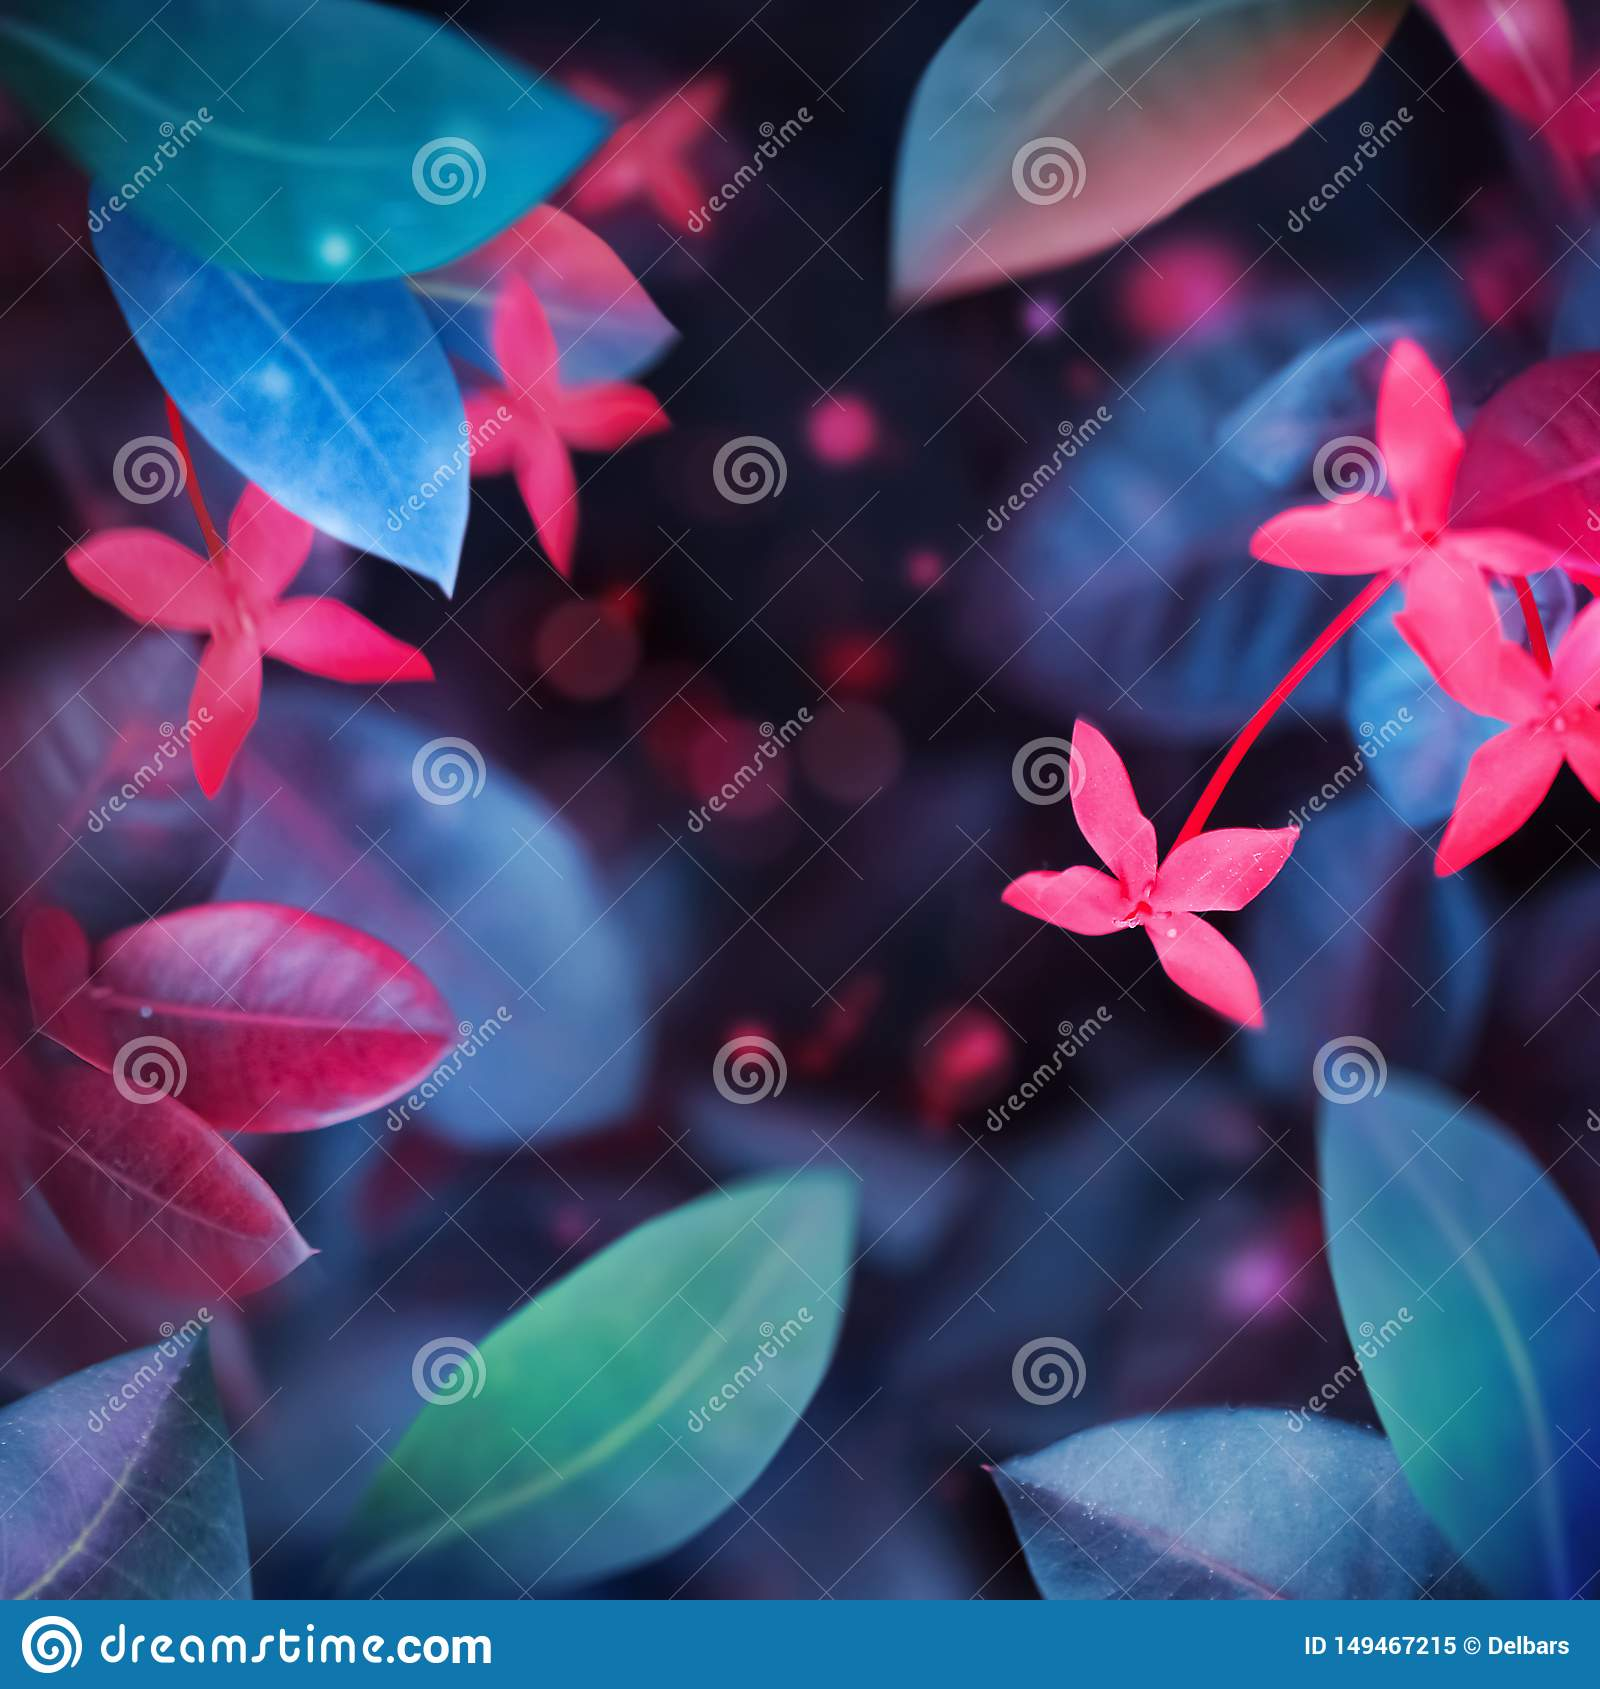 Fantastic summer tropical colorful flowers and leaves. Bright natural spring summer ultra image.